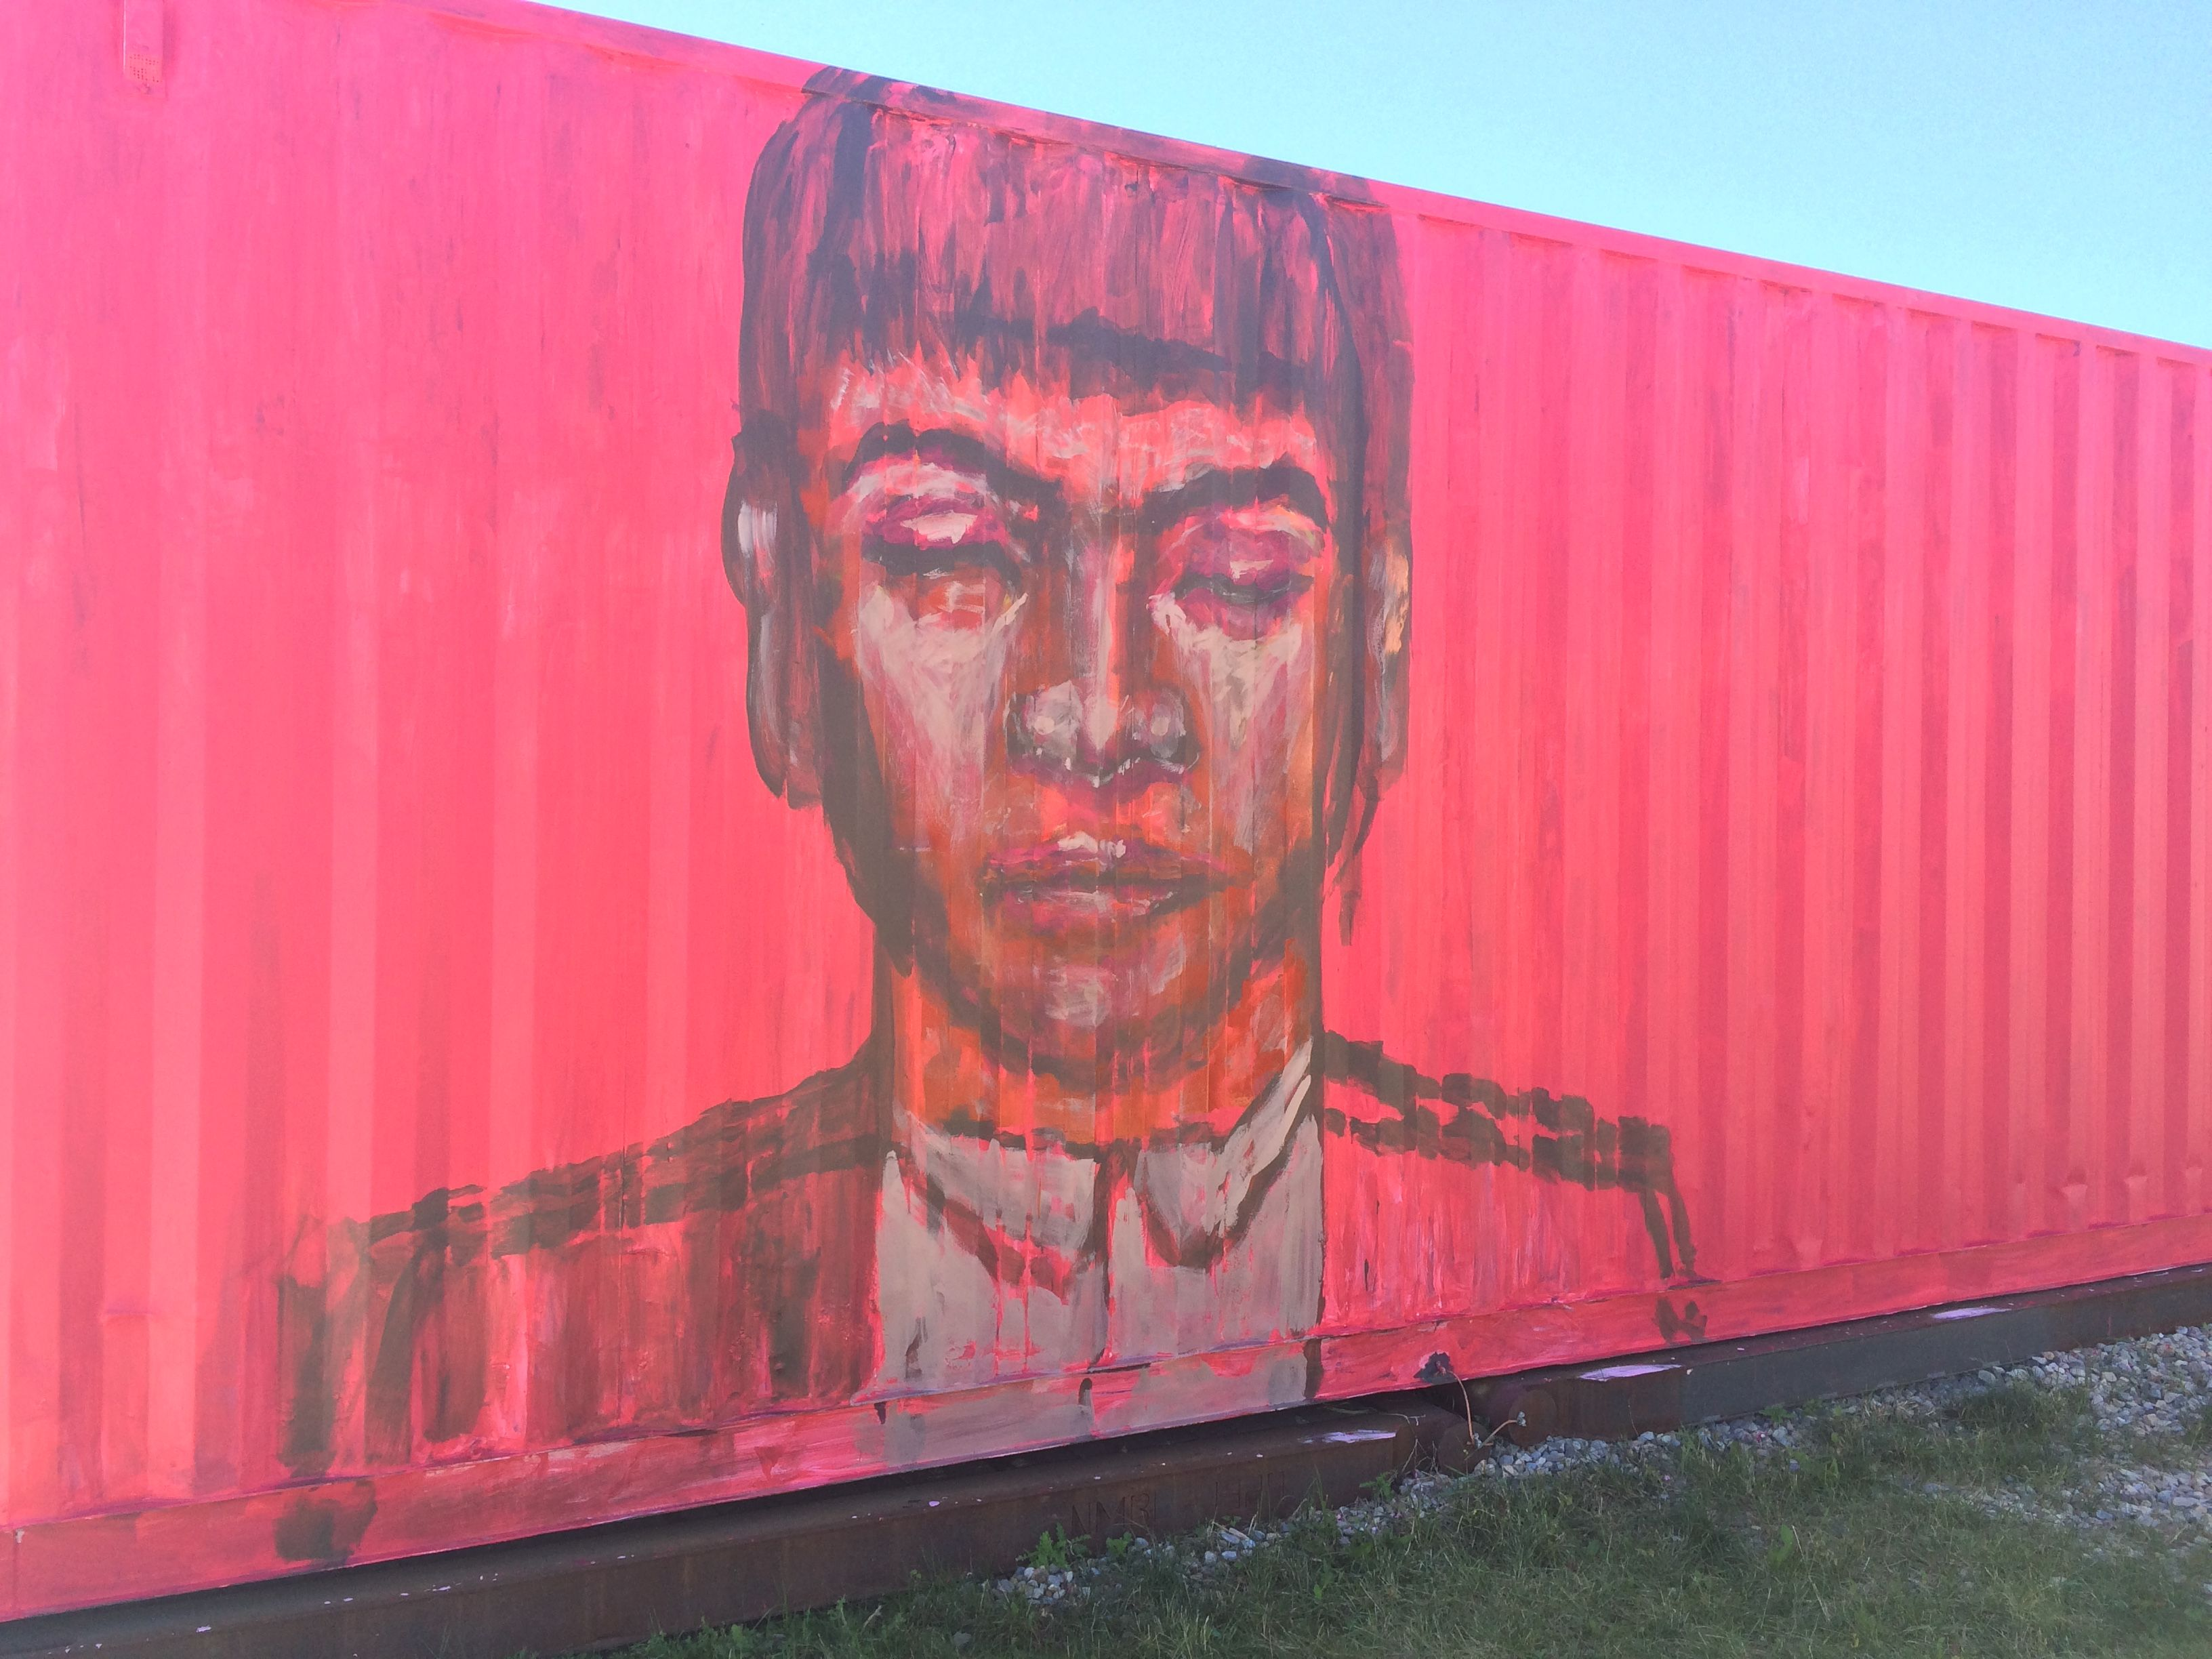 Graffiti wall calgary - Cool Artwork Painted On Shipping Containers In Kensington Calgary I Love Street Art Opposed To